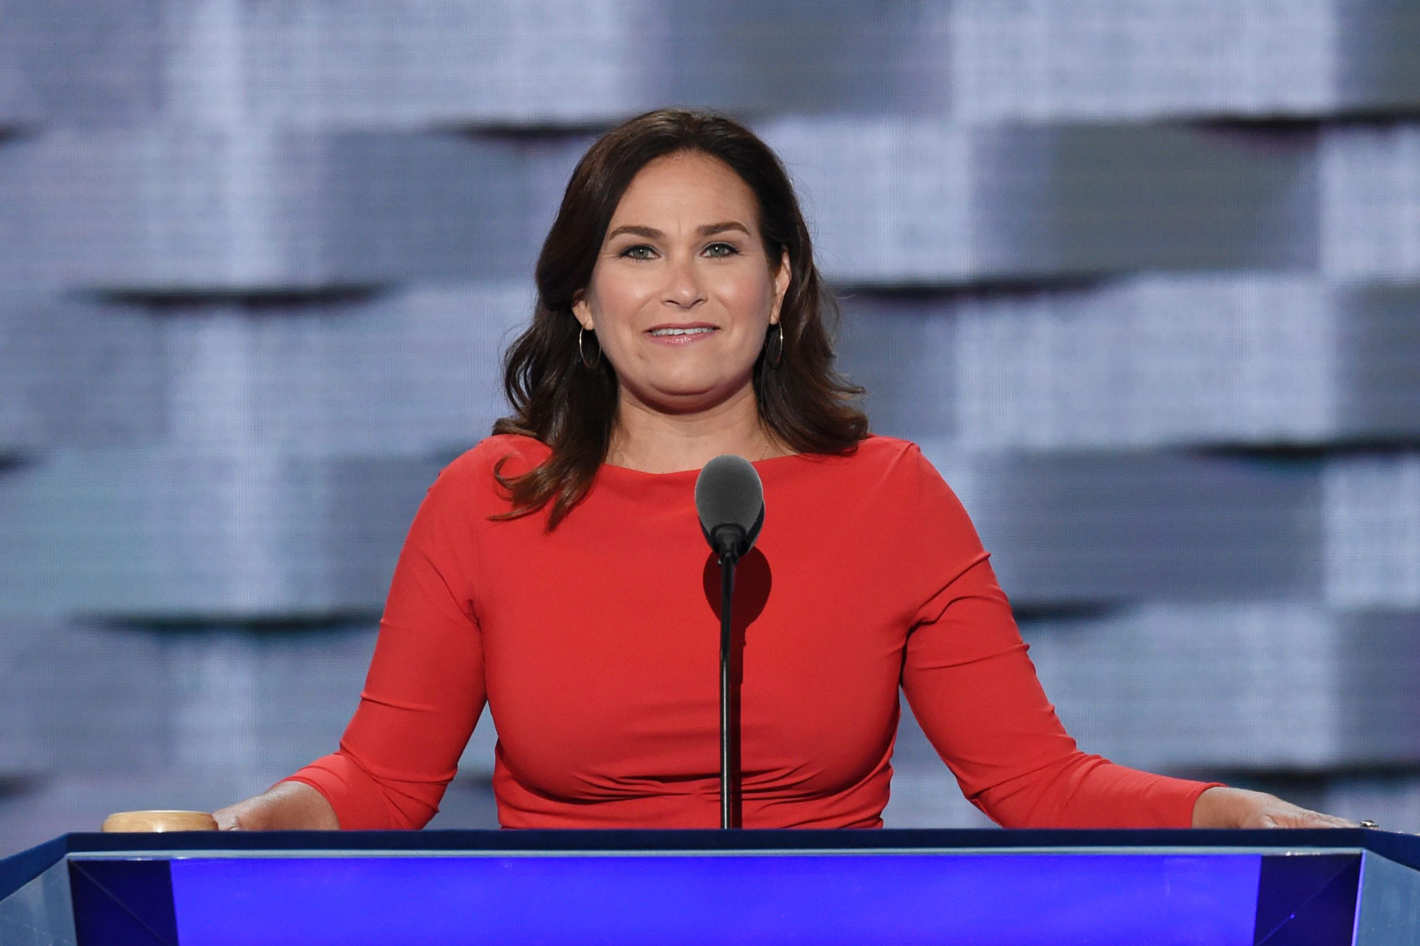 a white woman with brown hair speaks behind a red podium